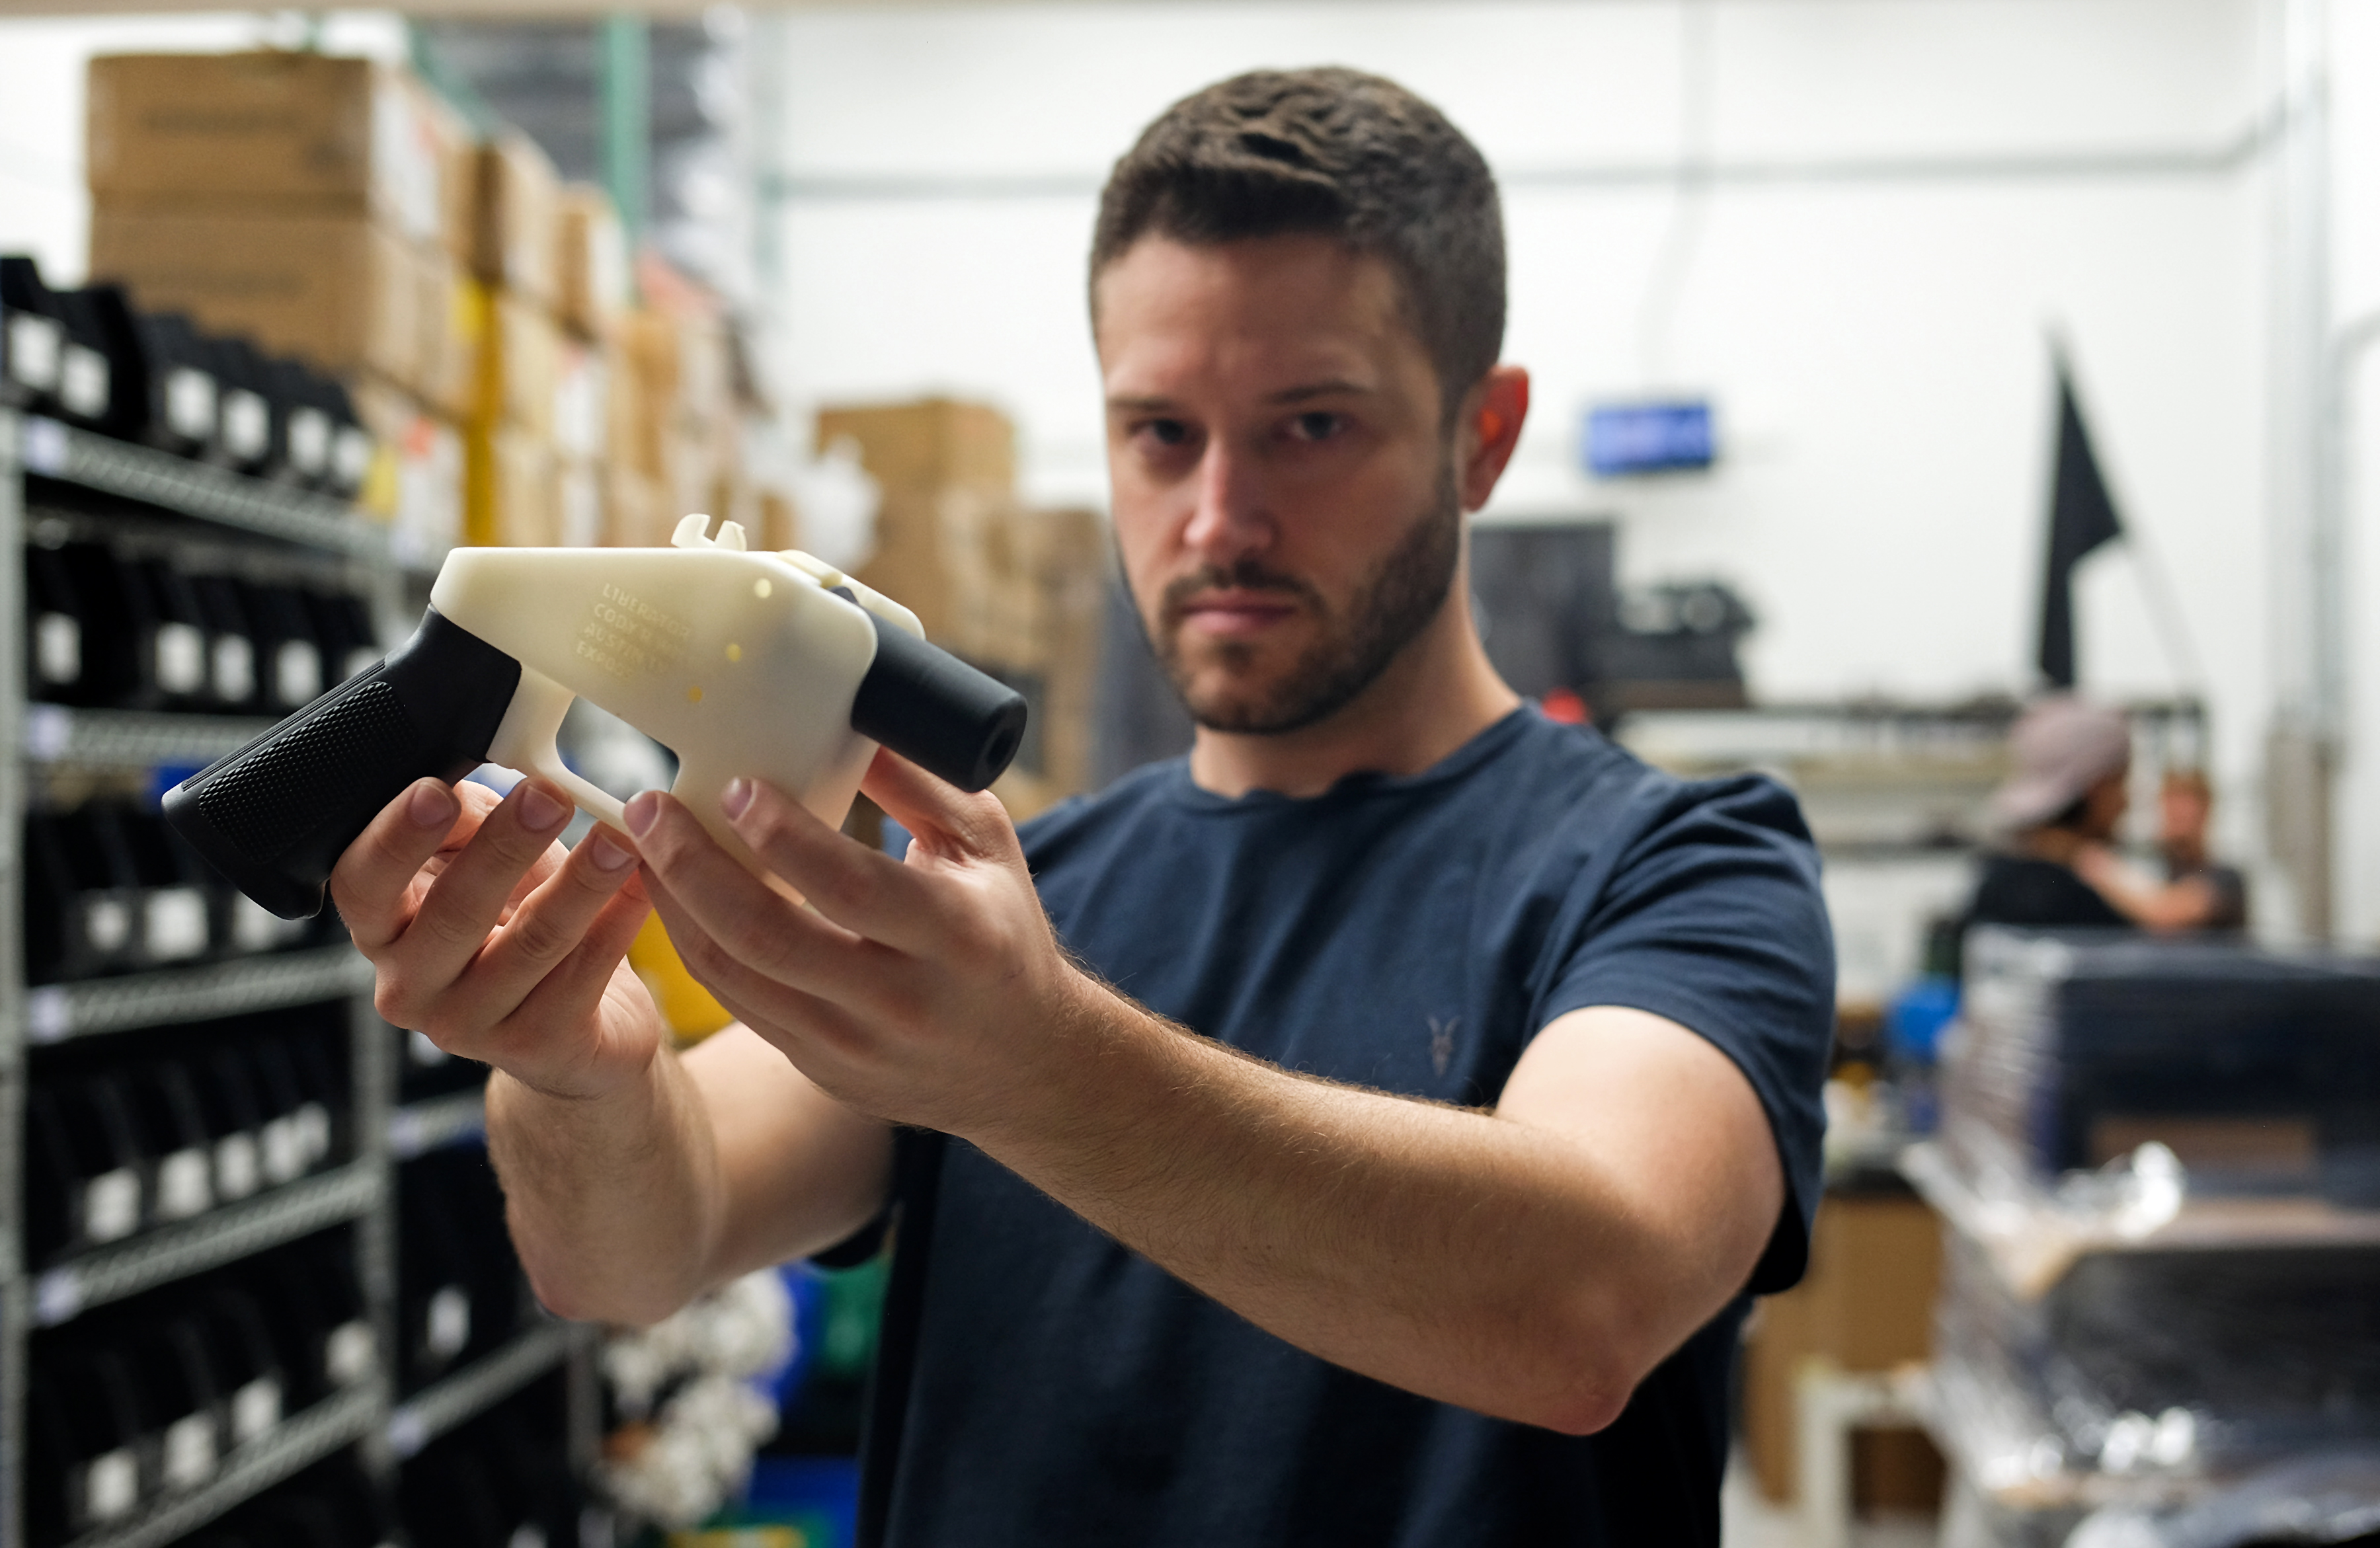 Cody Wilson, owner of Defense Distributed, holds a 3D-printed gun in his factory in Austin, Texas, on Aug. 1, 2018.